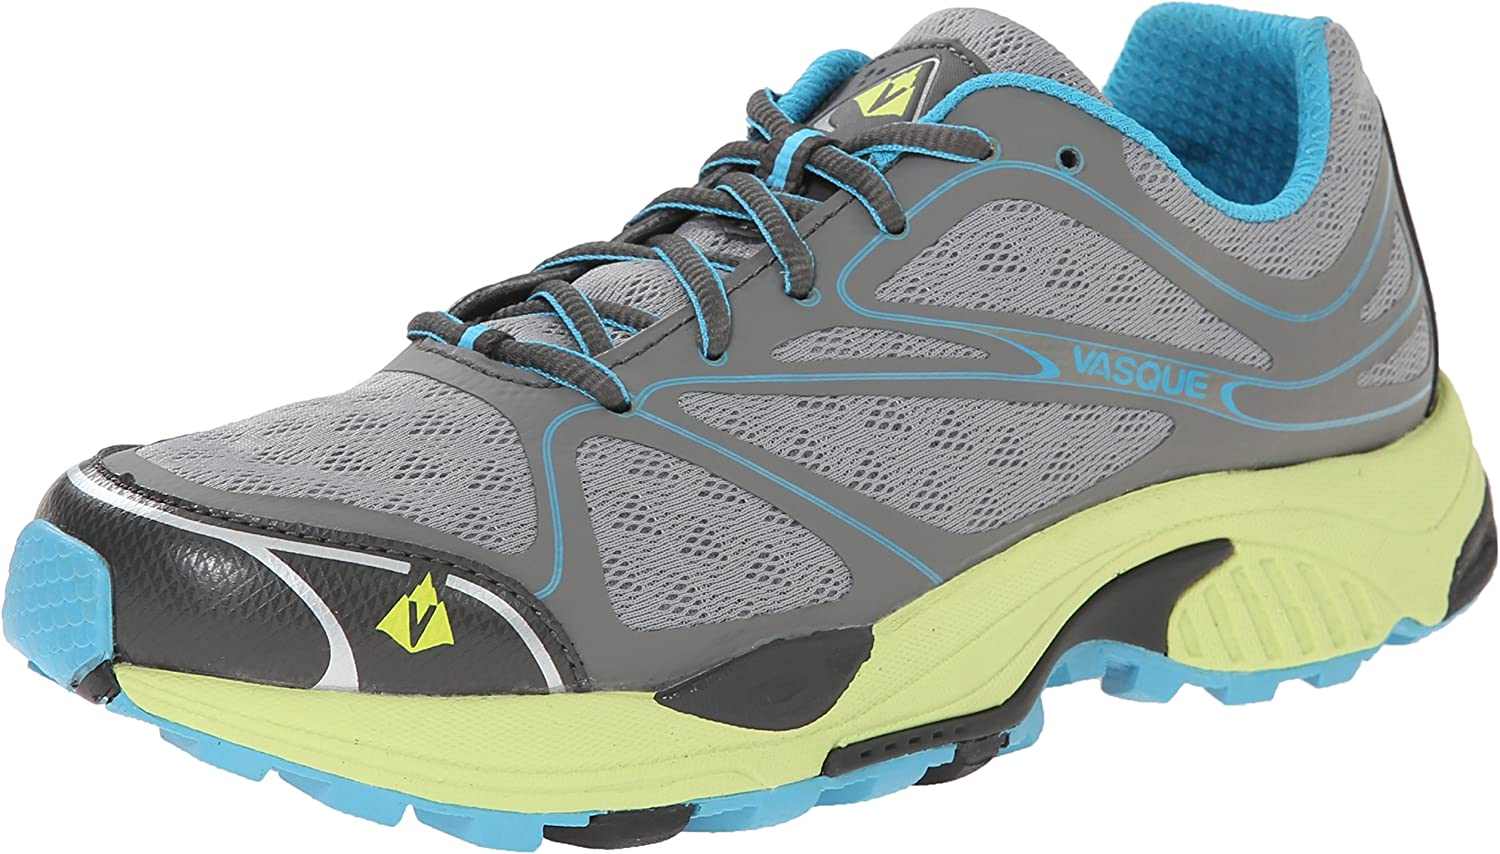 Vasque Women's Pendulum II Trailing Running shoes